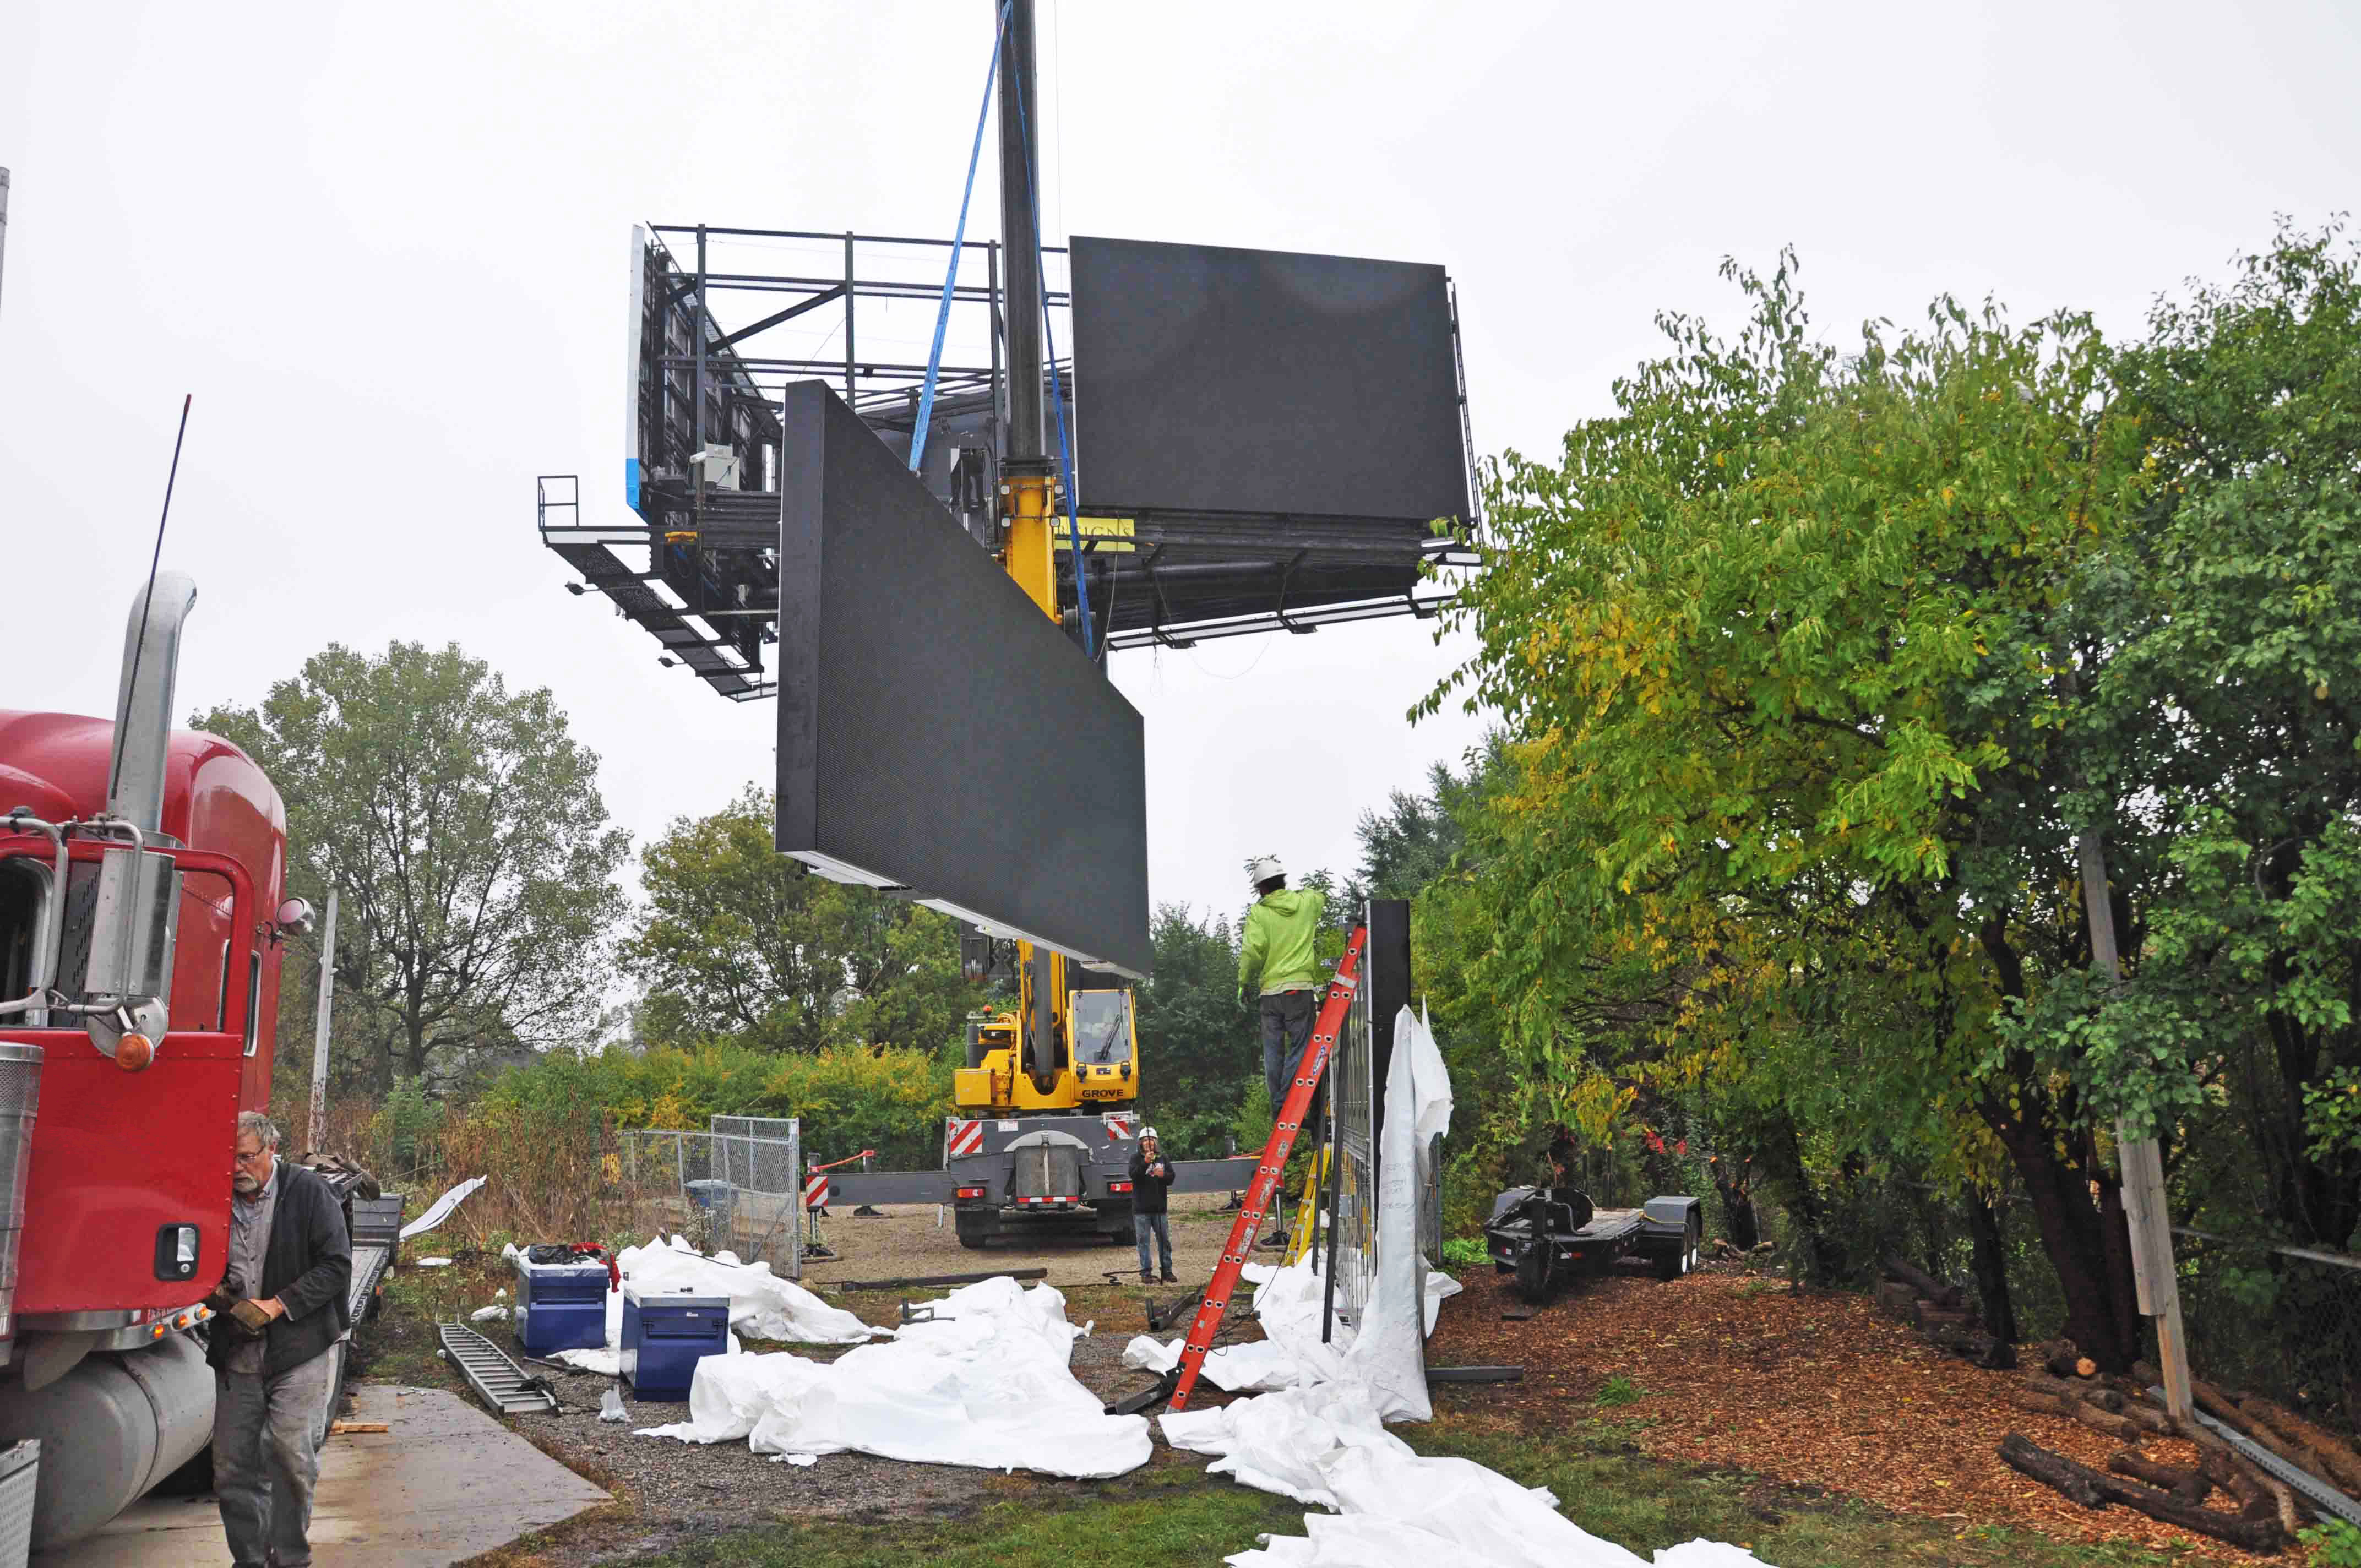 Installation of a double-sided Vee shaped LED billboard in Chicago, IL